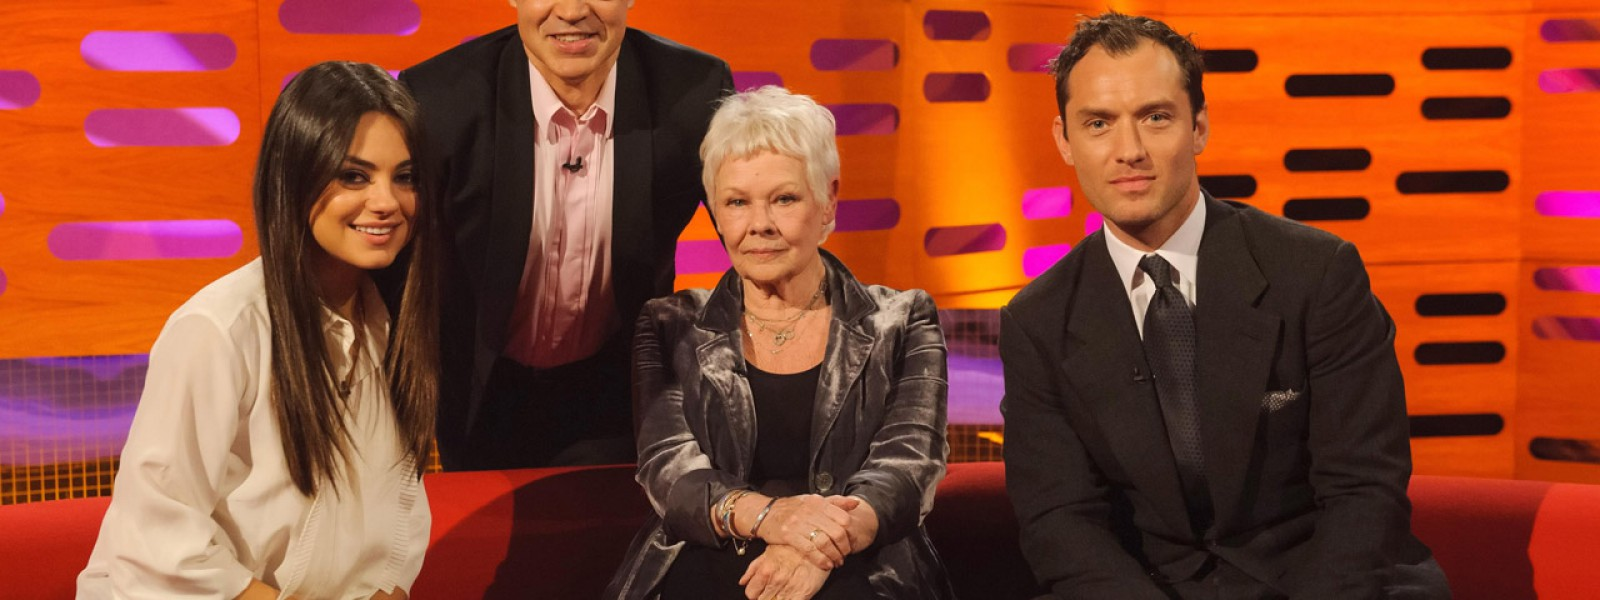 grahamnorton_photo_s12_e18_01